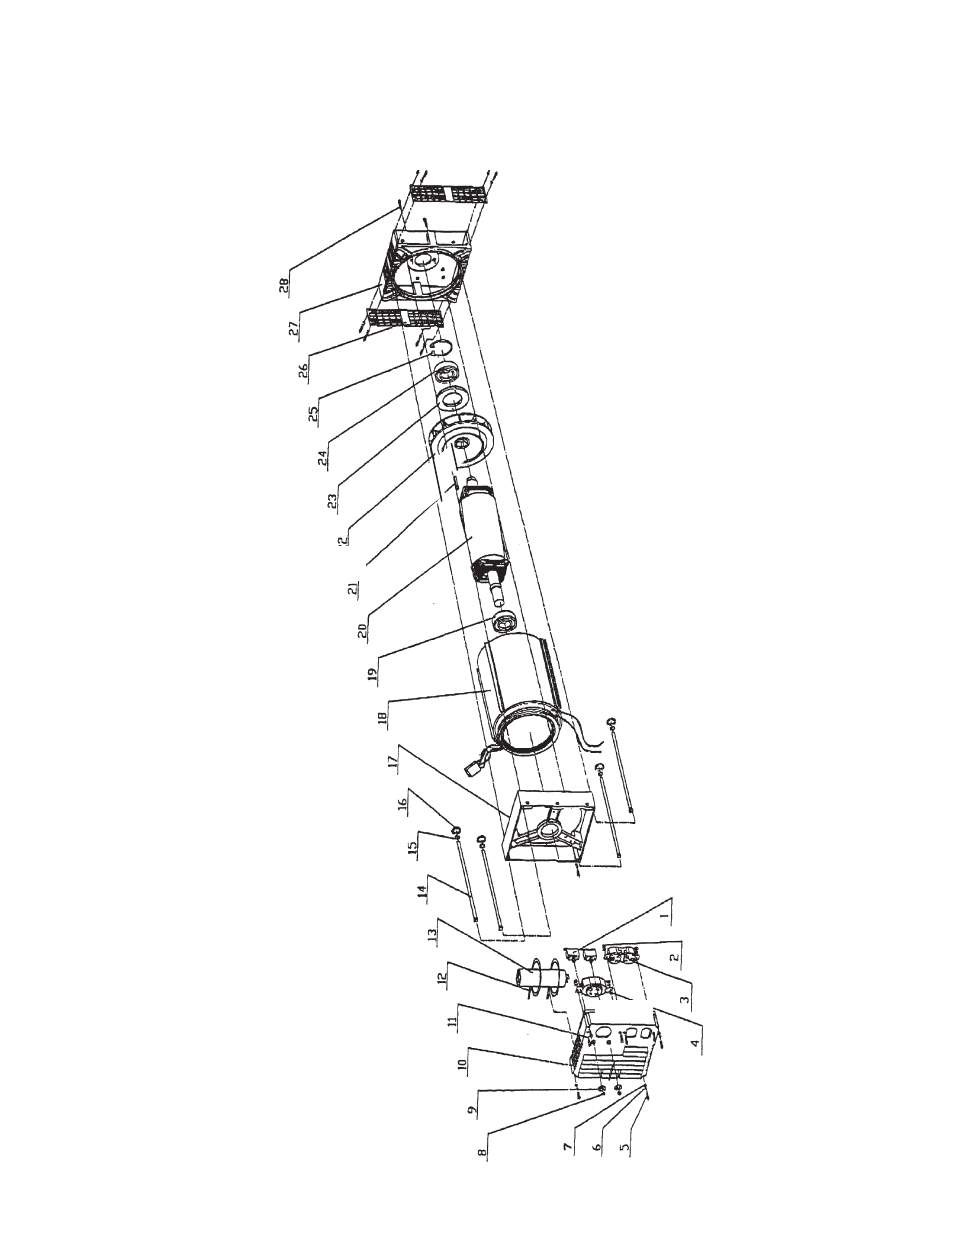 assembly drawing | chicago electric chicago power tools 10kw generator  45416 user manual | page 10 / 11